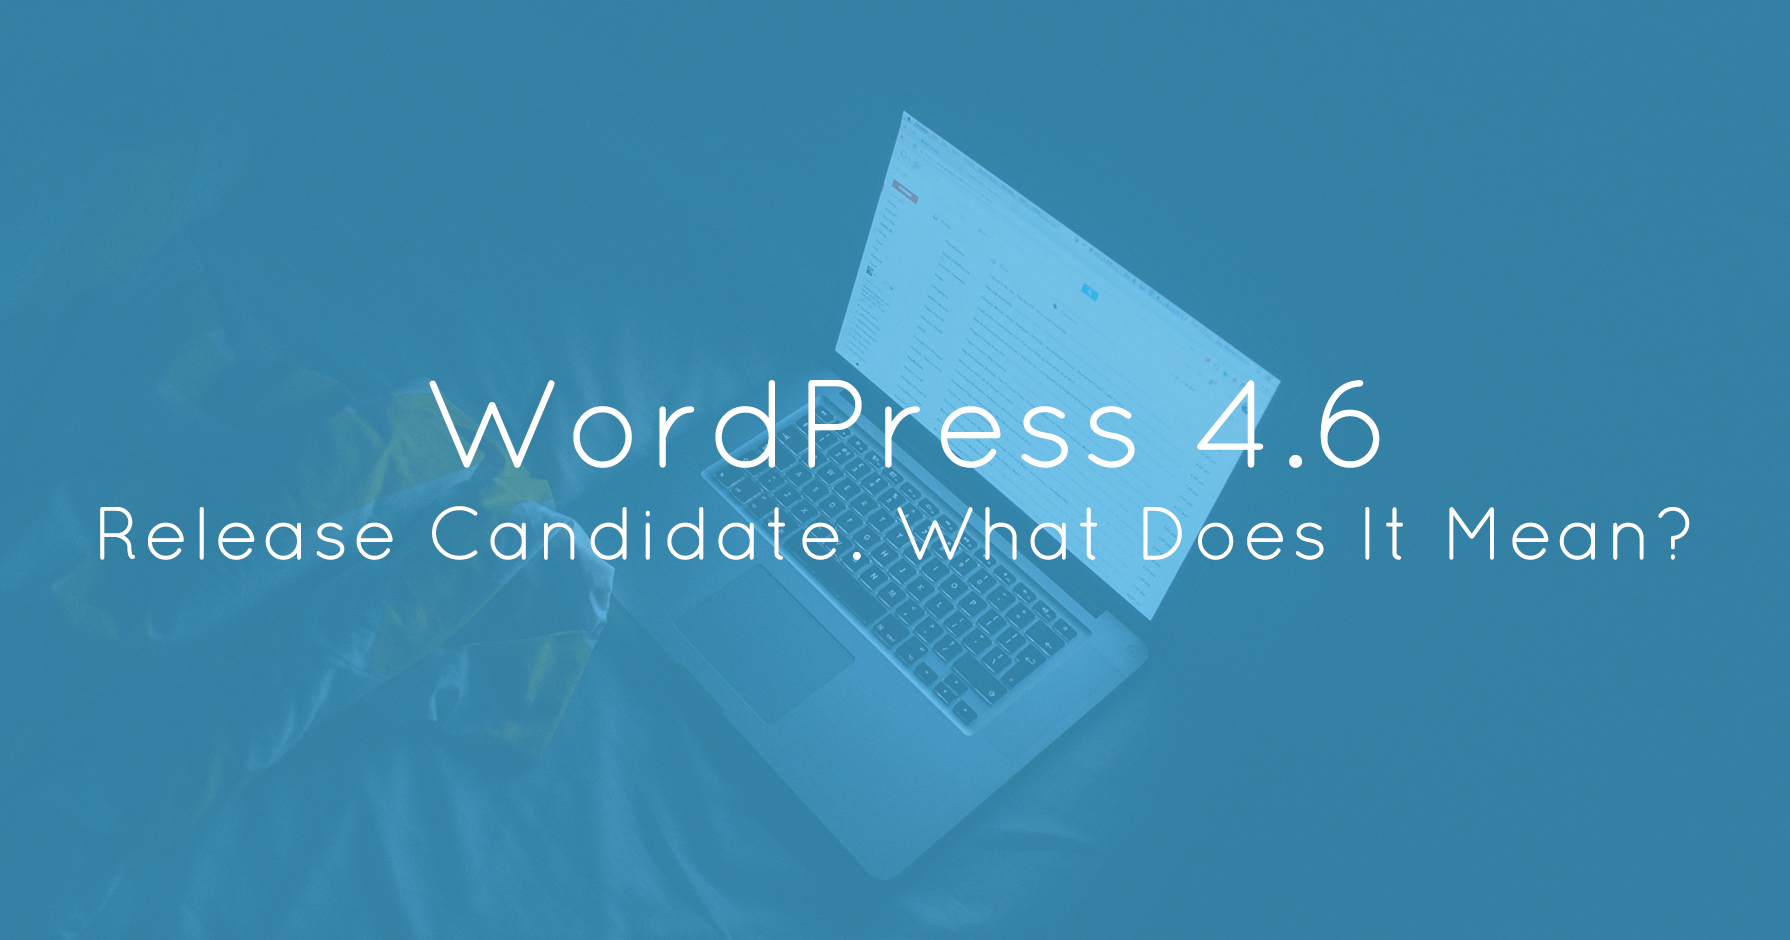 WordPress 4.6 Release Candidate